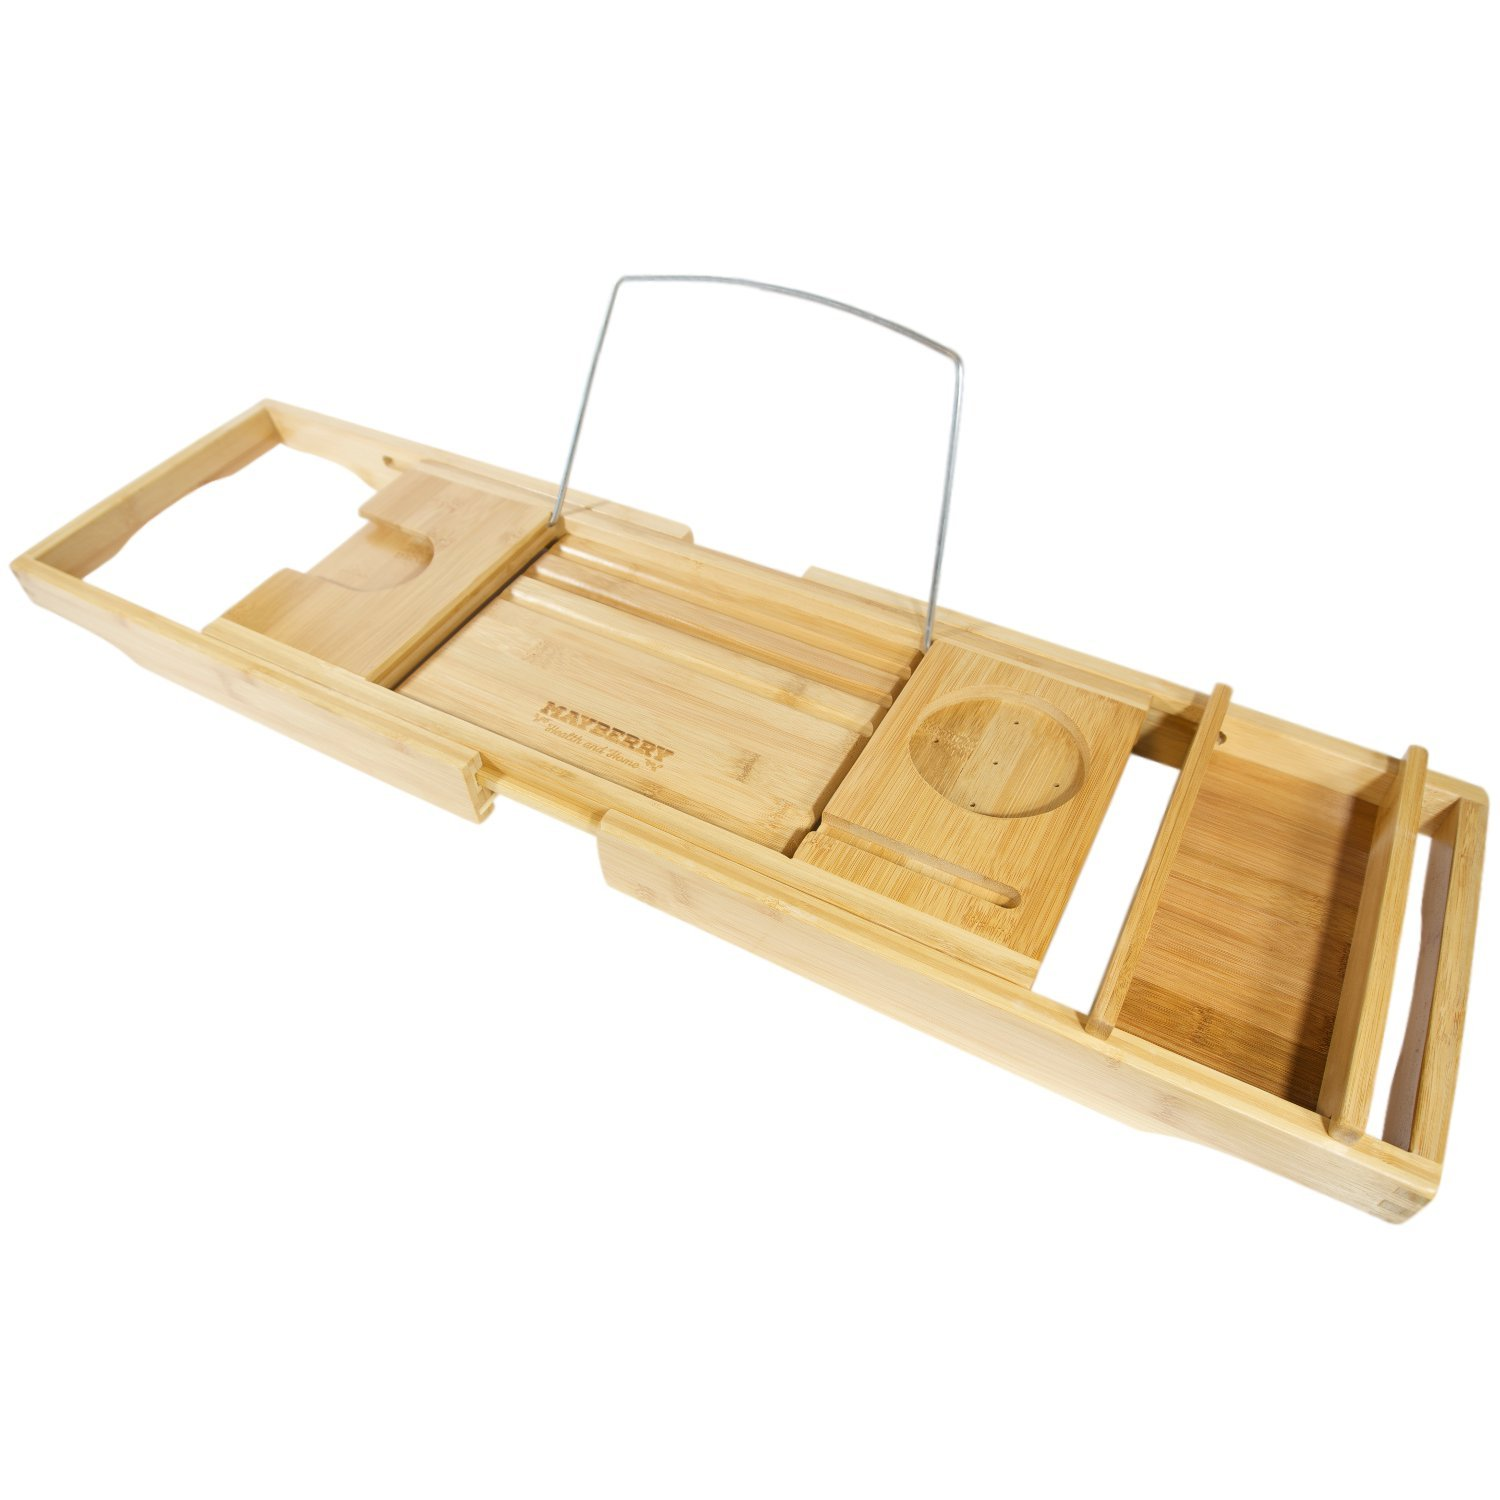 Cheap Bathtub Caddy, find Bathtub Caddy deals on line at Alibaba.com